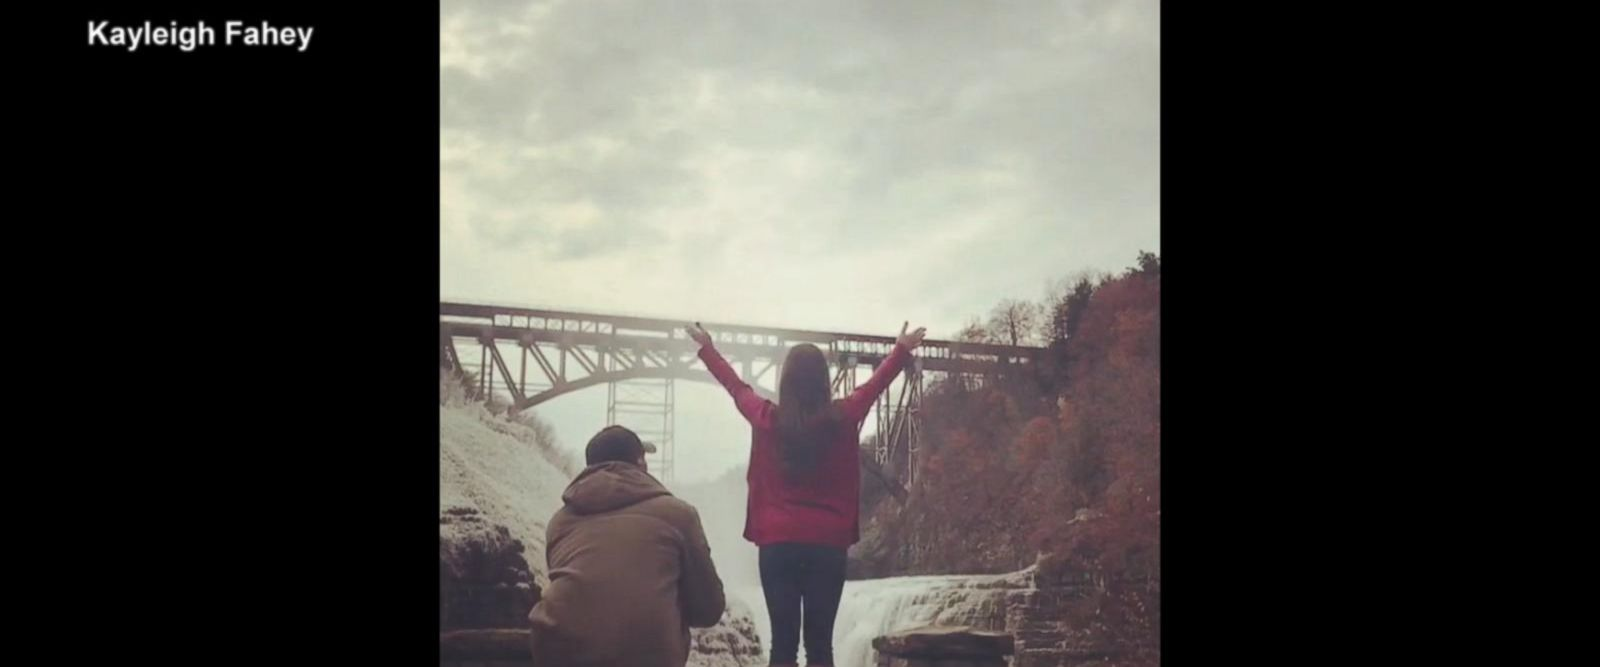 VIDEO: Woman who thinks she's taking a photo gets picture-perfect proposal